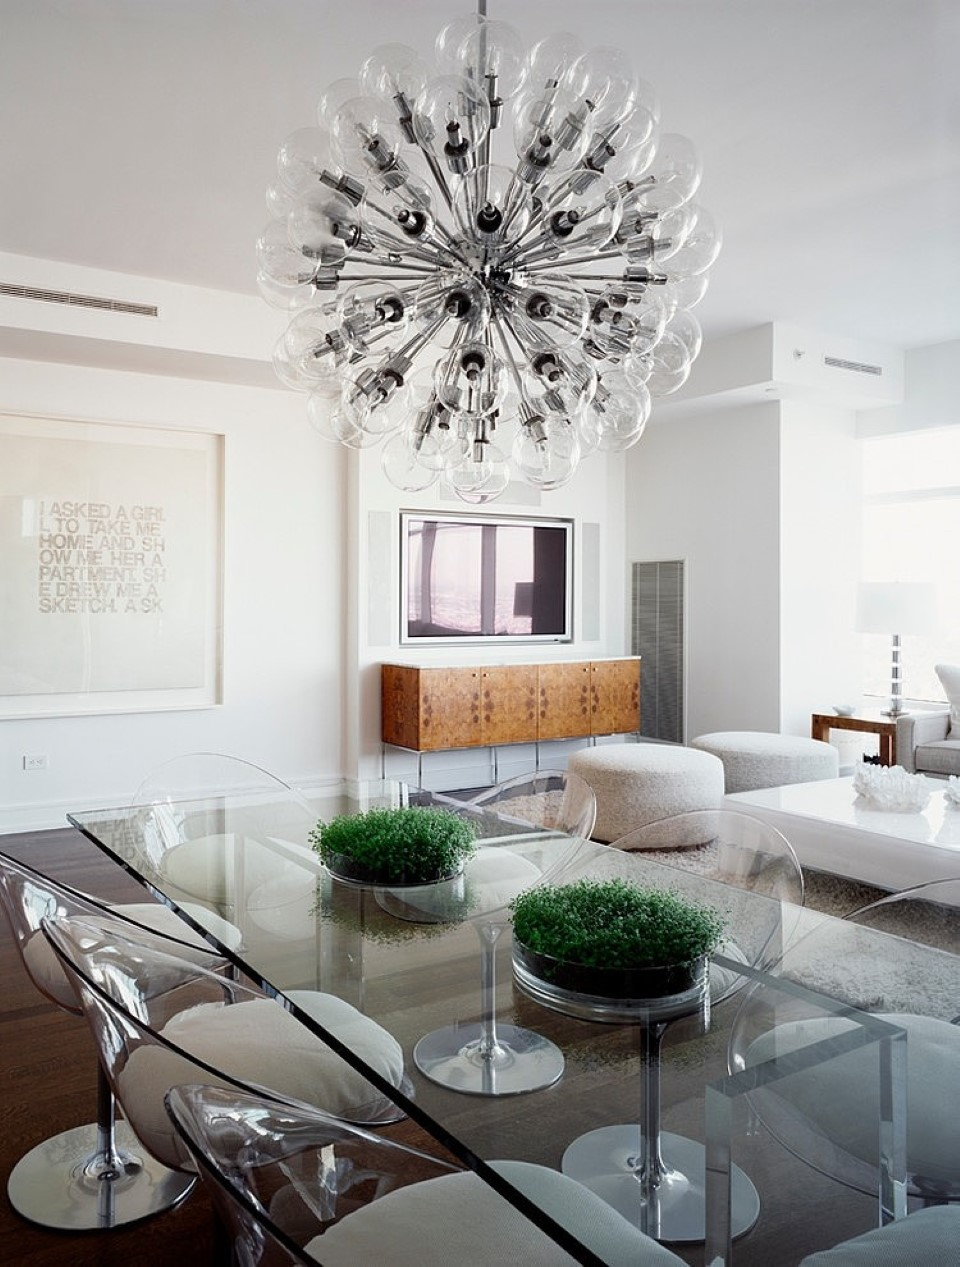 amazing-and-fascinating-dining-space-idea-with-edgy-glass-table-and-chairs-under-gorgeous-artsy-chandelier